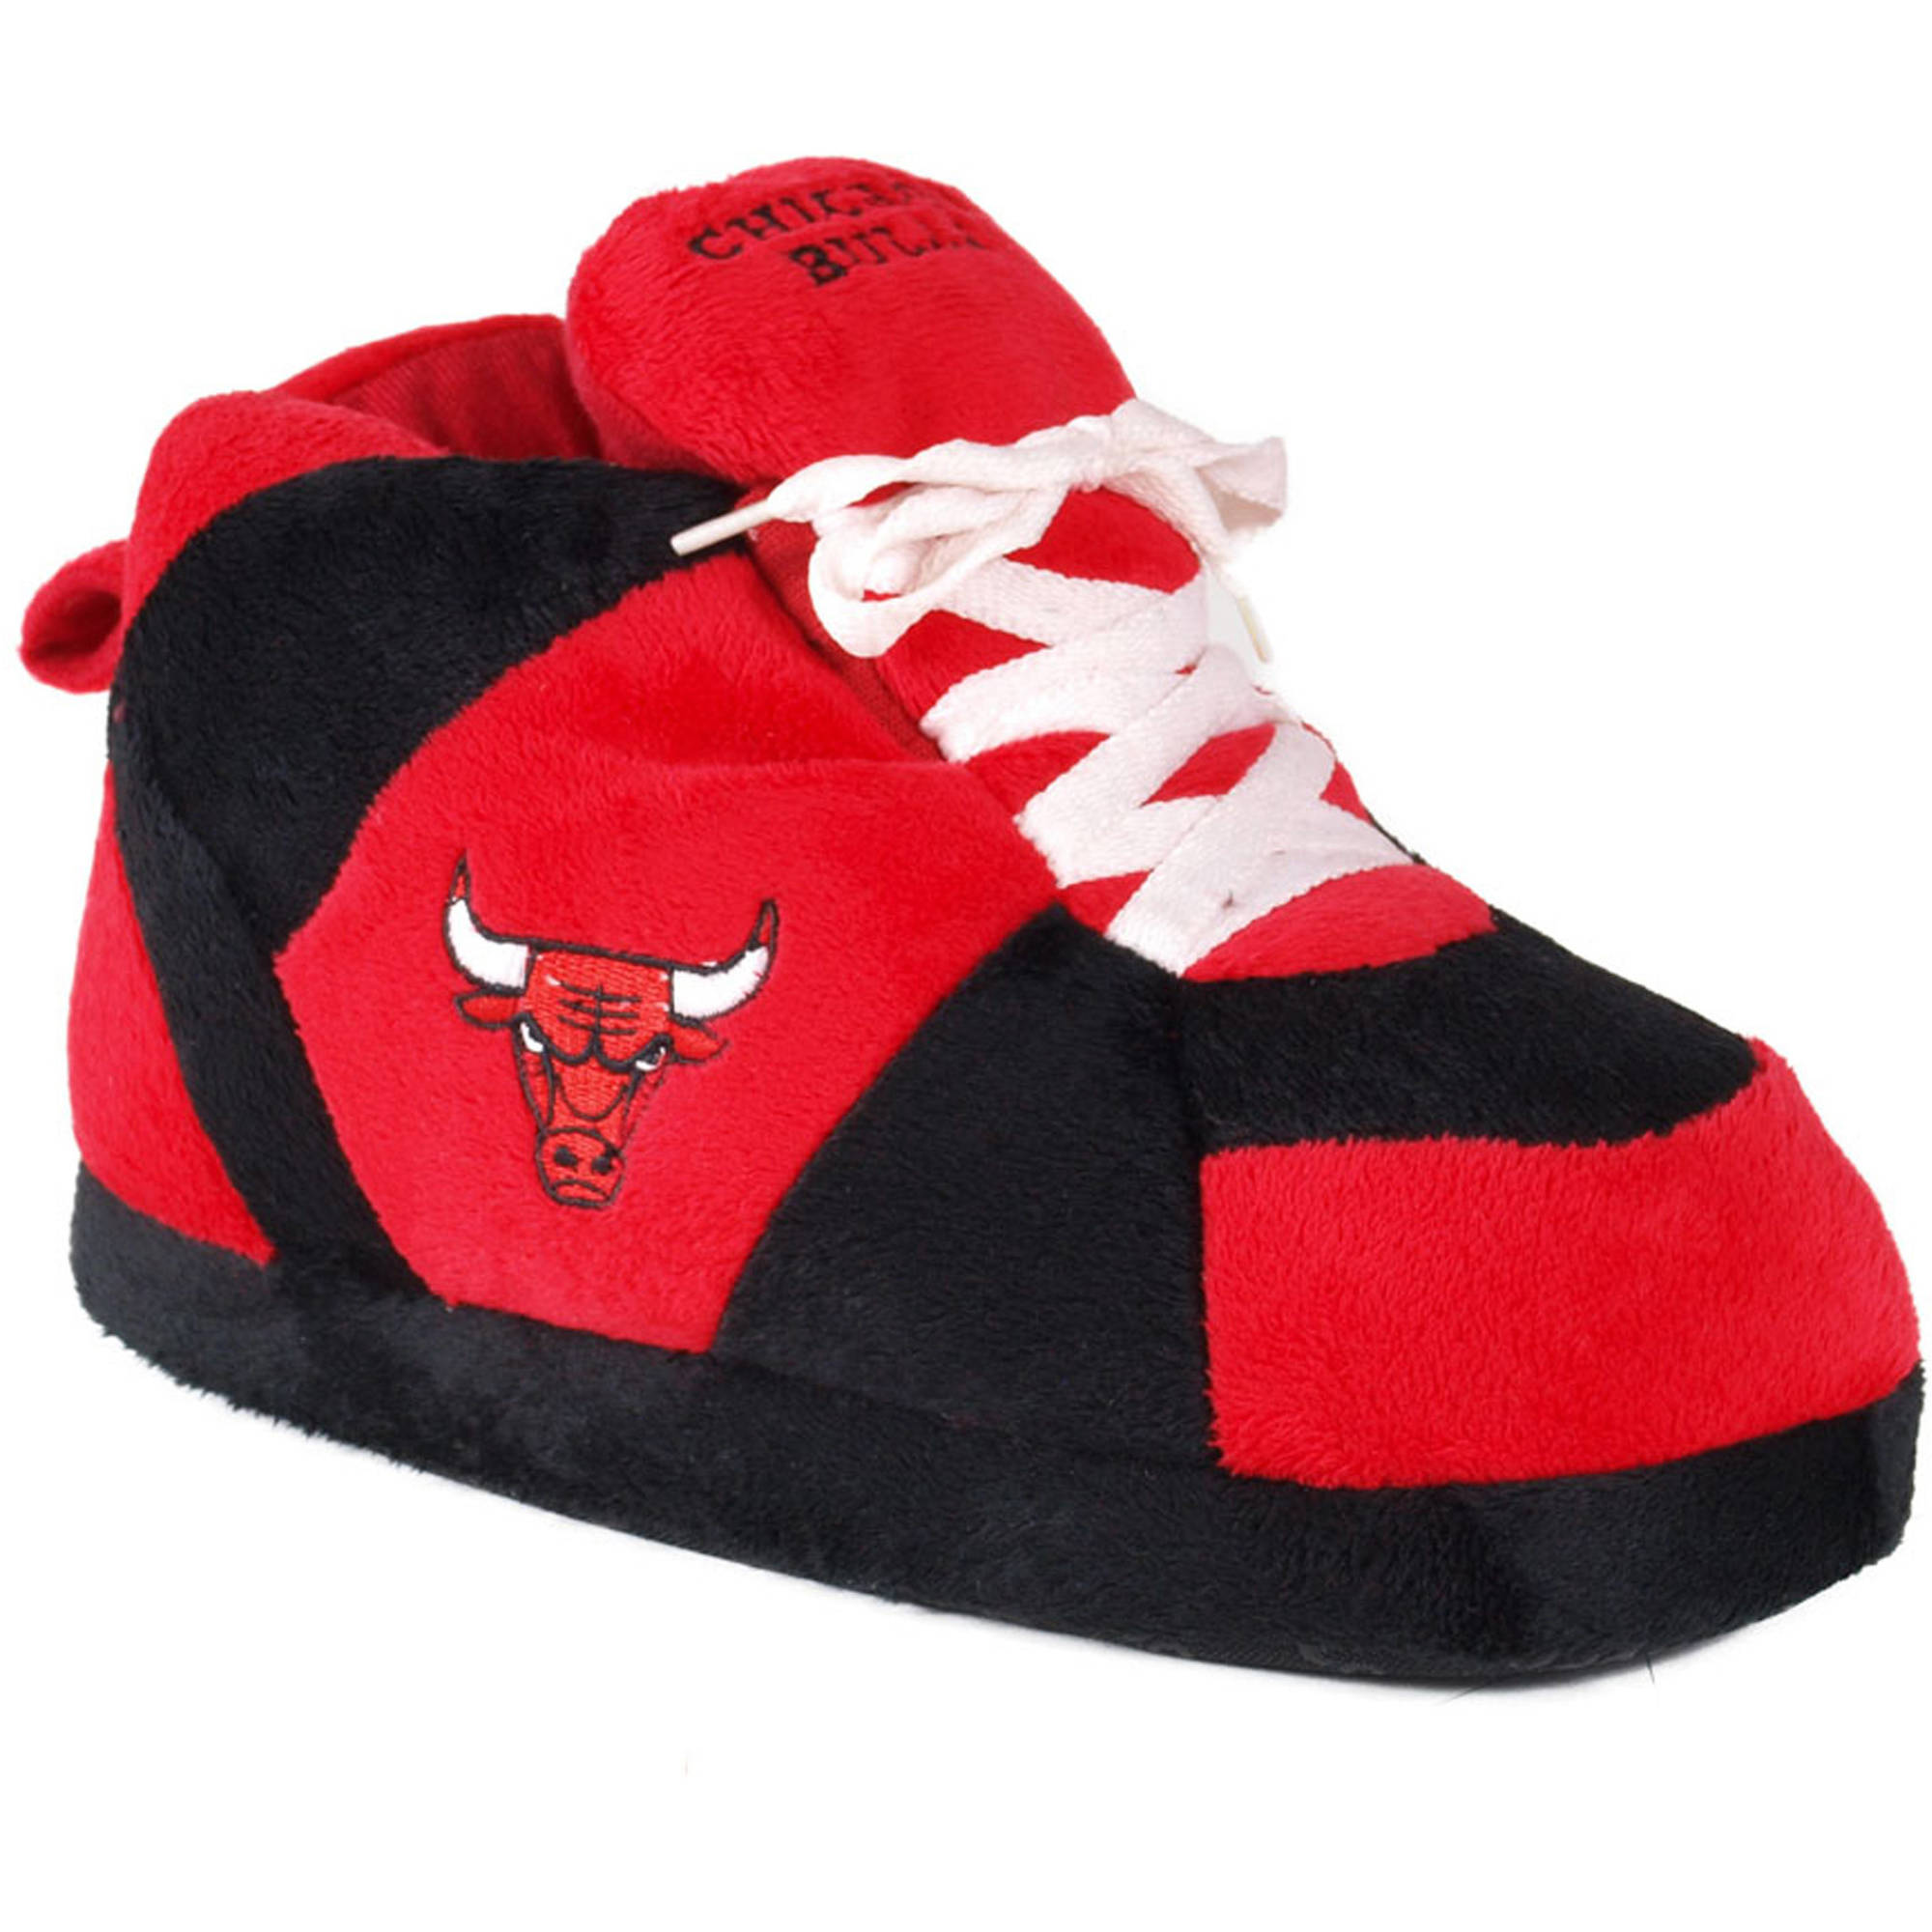 NBA Men's Chicago Bulls Slipper